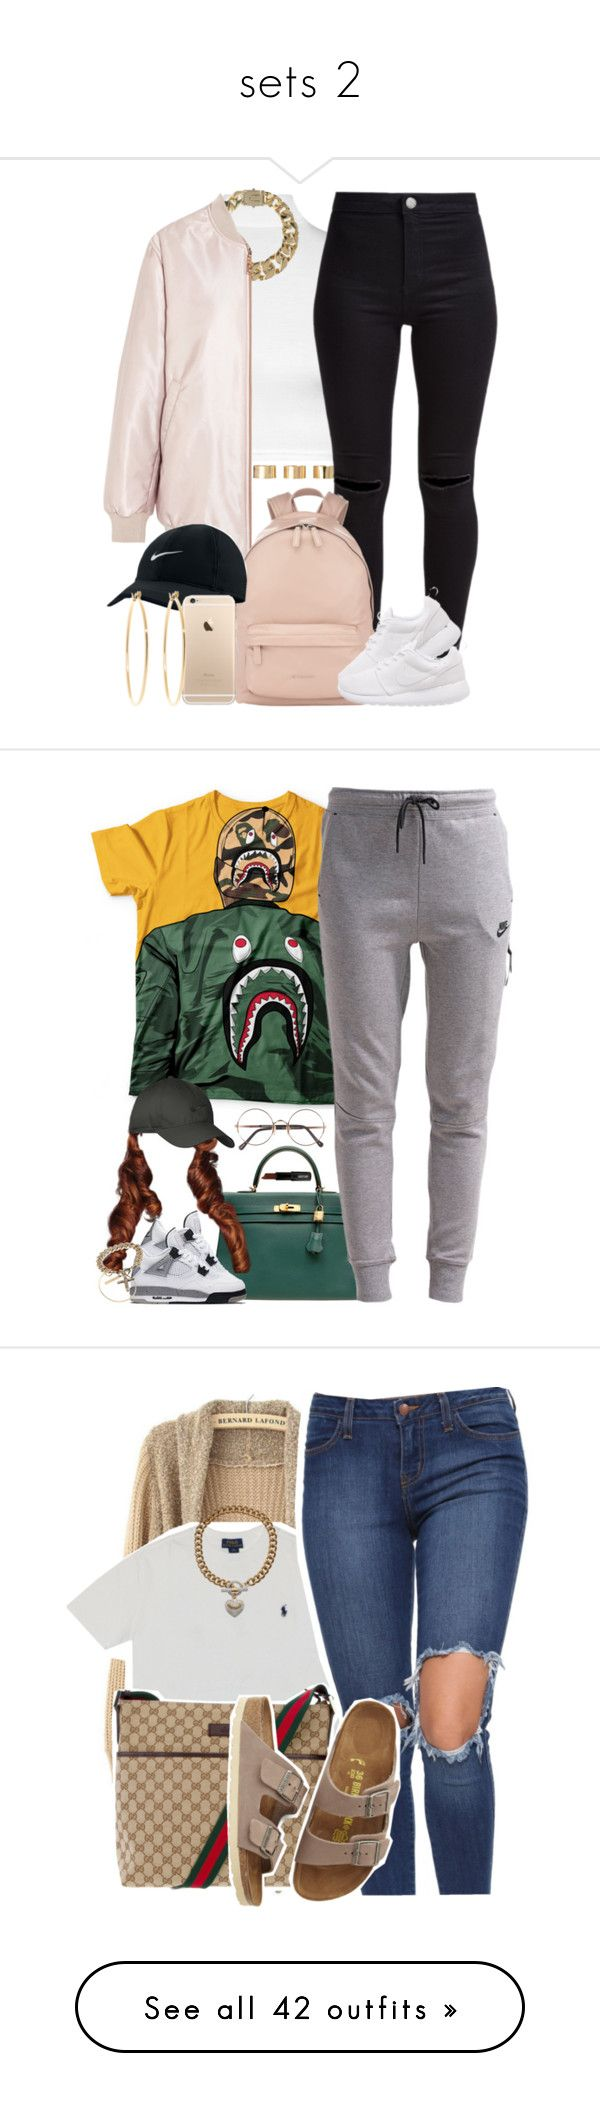 """""""sets 2"""" by simoneswagg on Polyvore featuring WearAll, AllSaints, Acne Studios, ASOS, New Look, Givenchy, NIKE, Brooks Brothers, Hermès and A BATHING APE"""